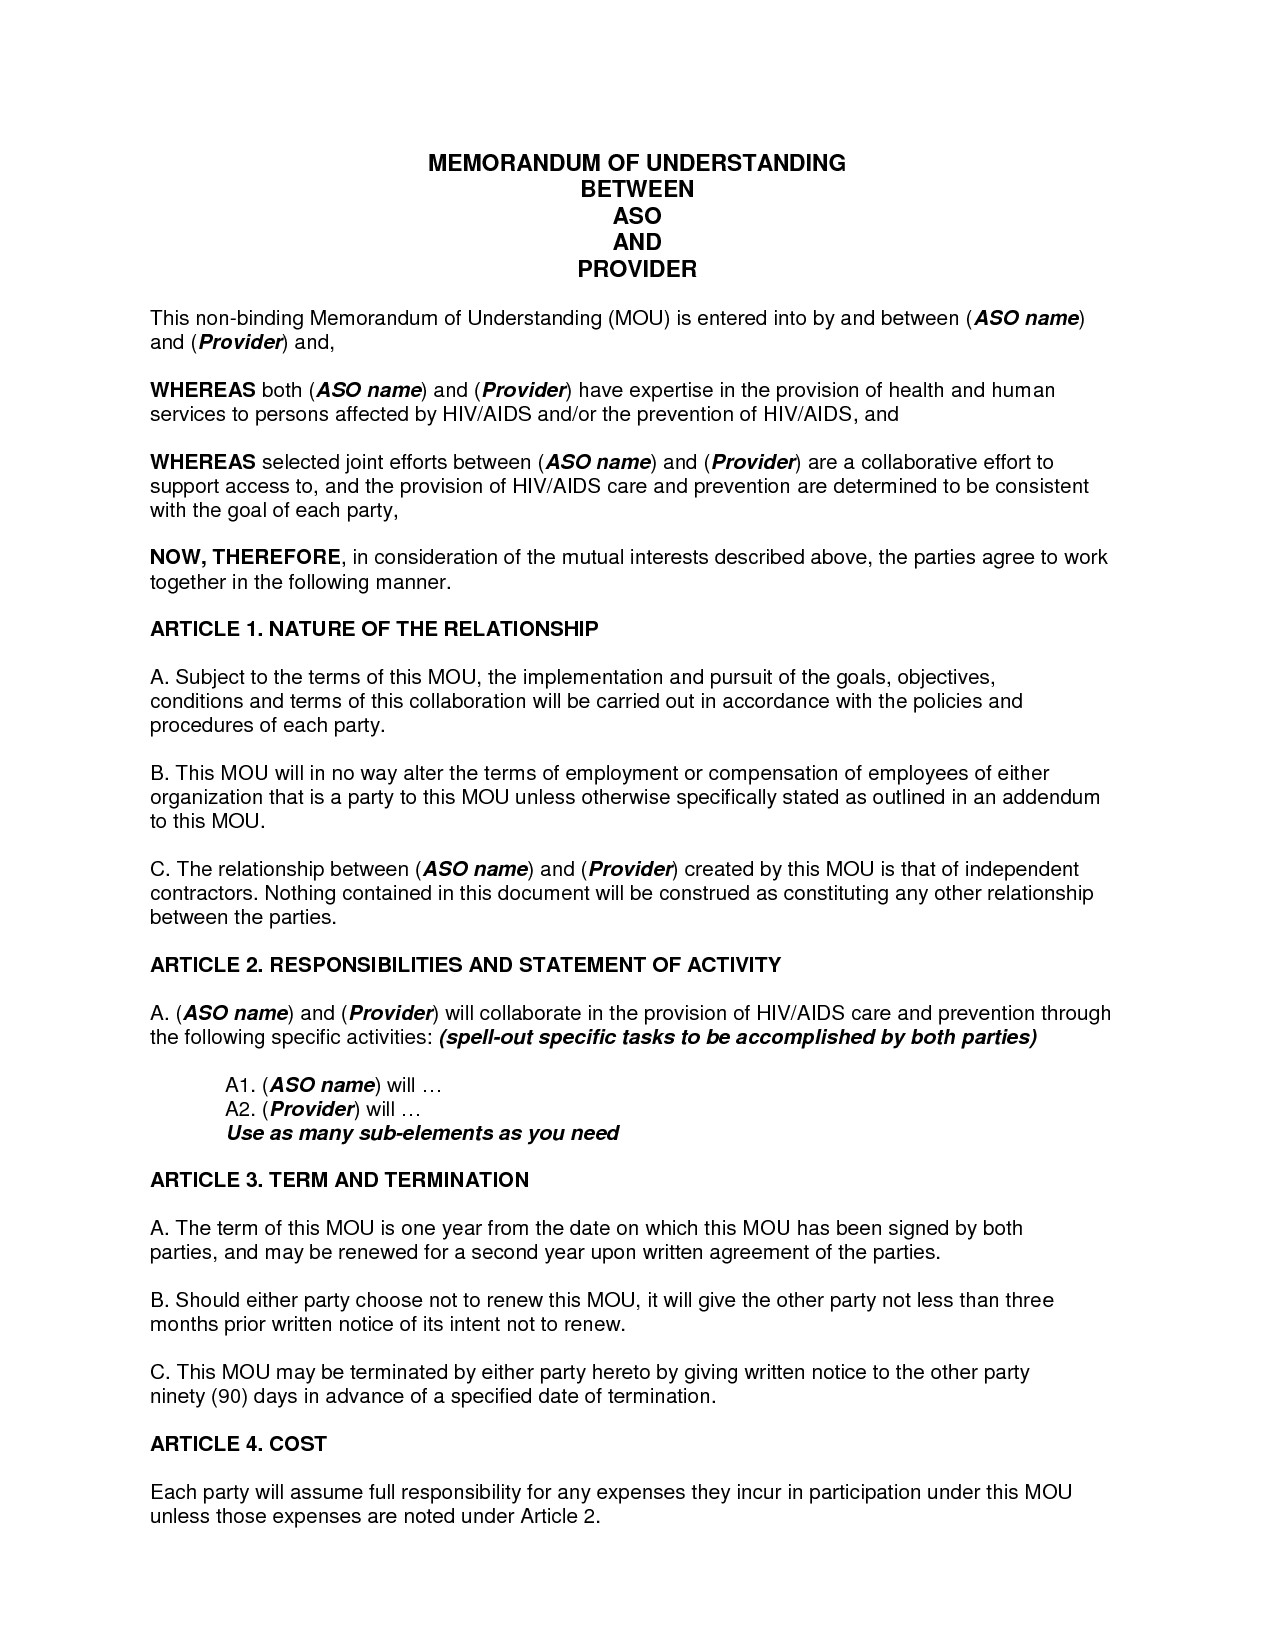 Memo Of Understanding Template Sample Memorandum Of Understanding Business Partnership